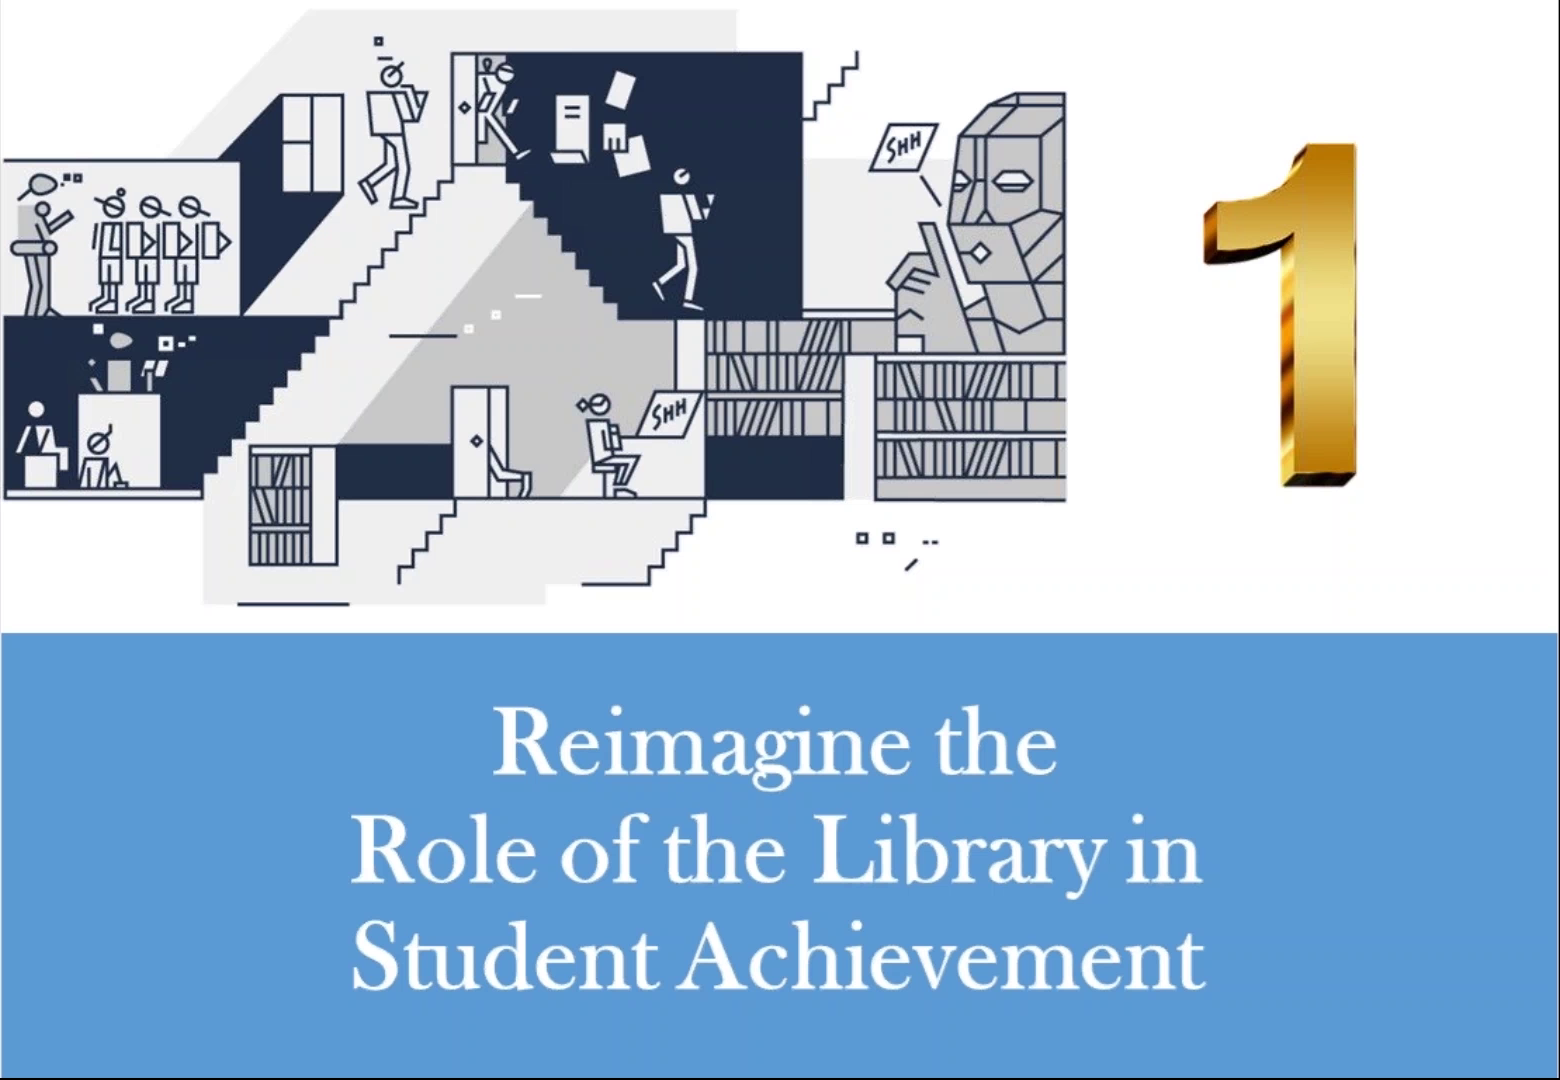 How to reimagine the role of the library in student achievement